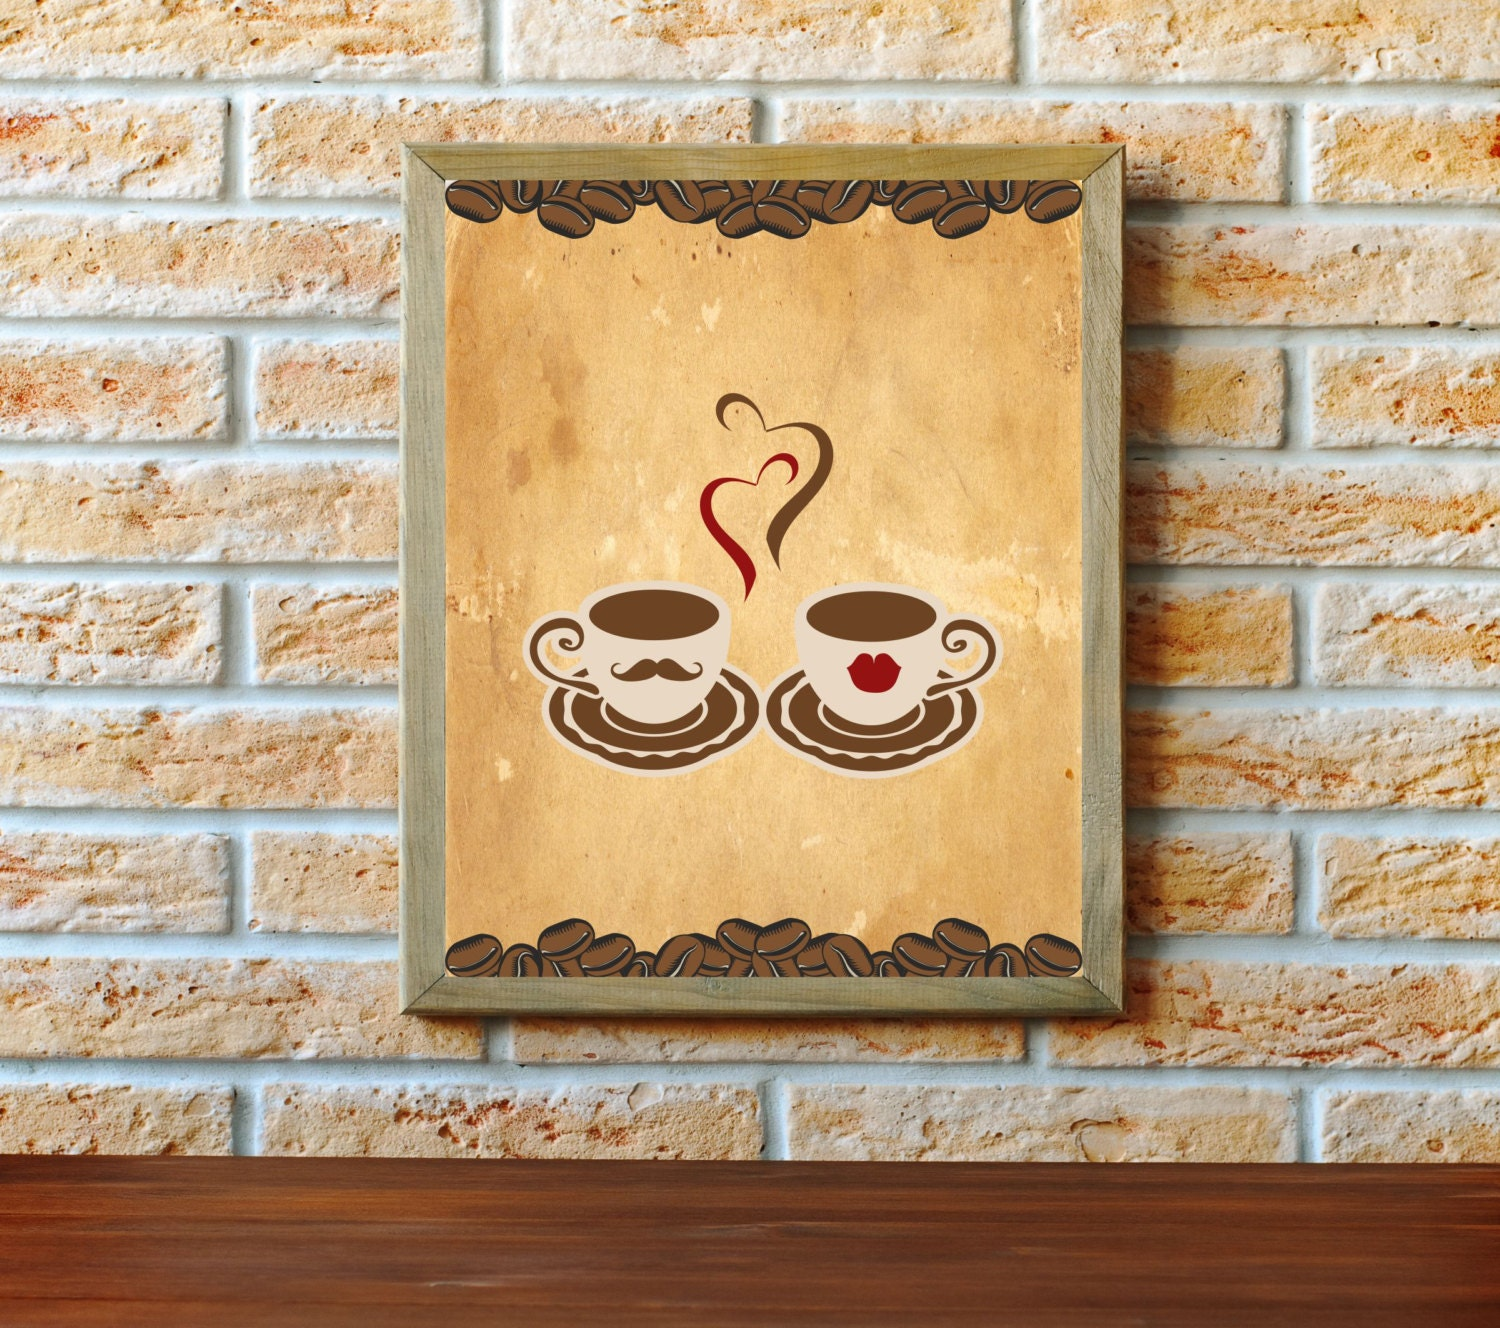 Retro Kitchen Wall Decor: Coffee Print Coffee Poster Kitchen Wall Decor Kitchen Retro